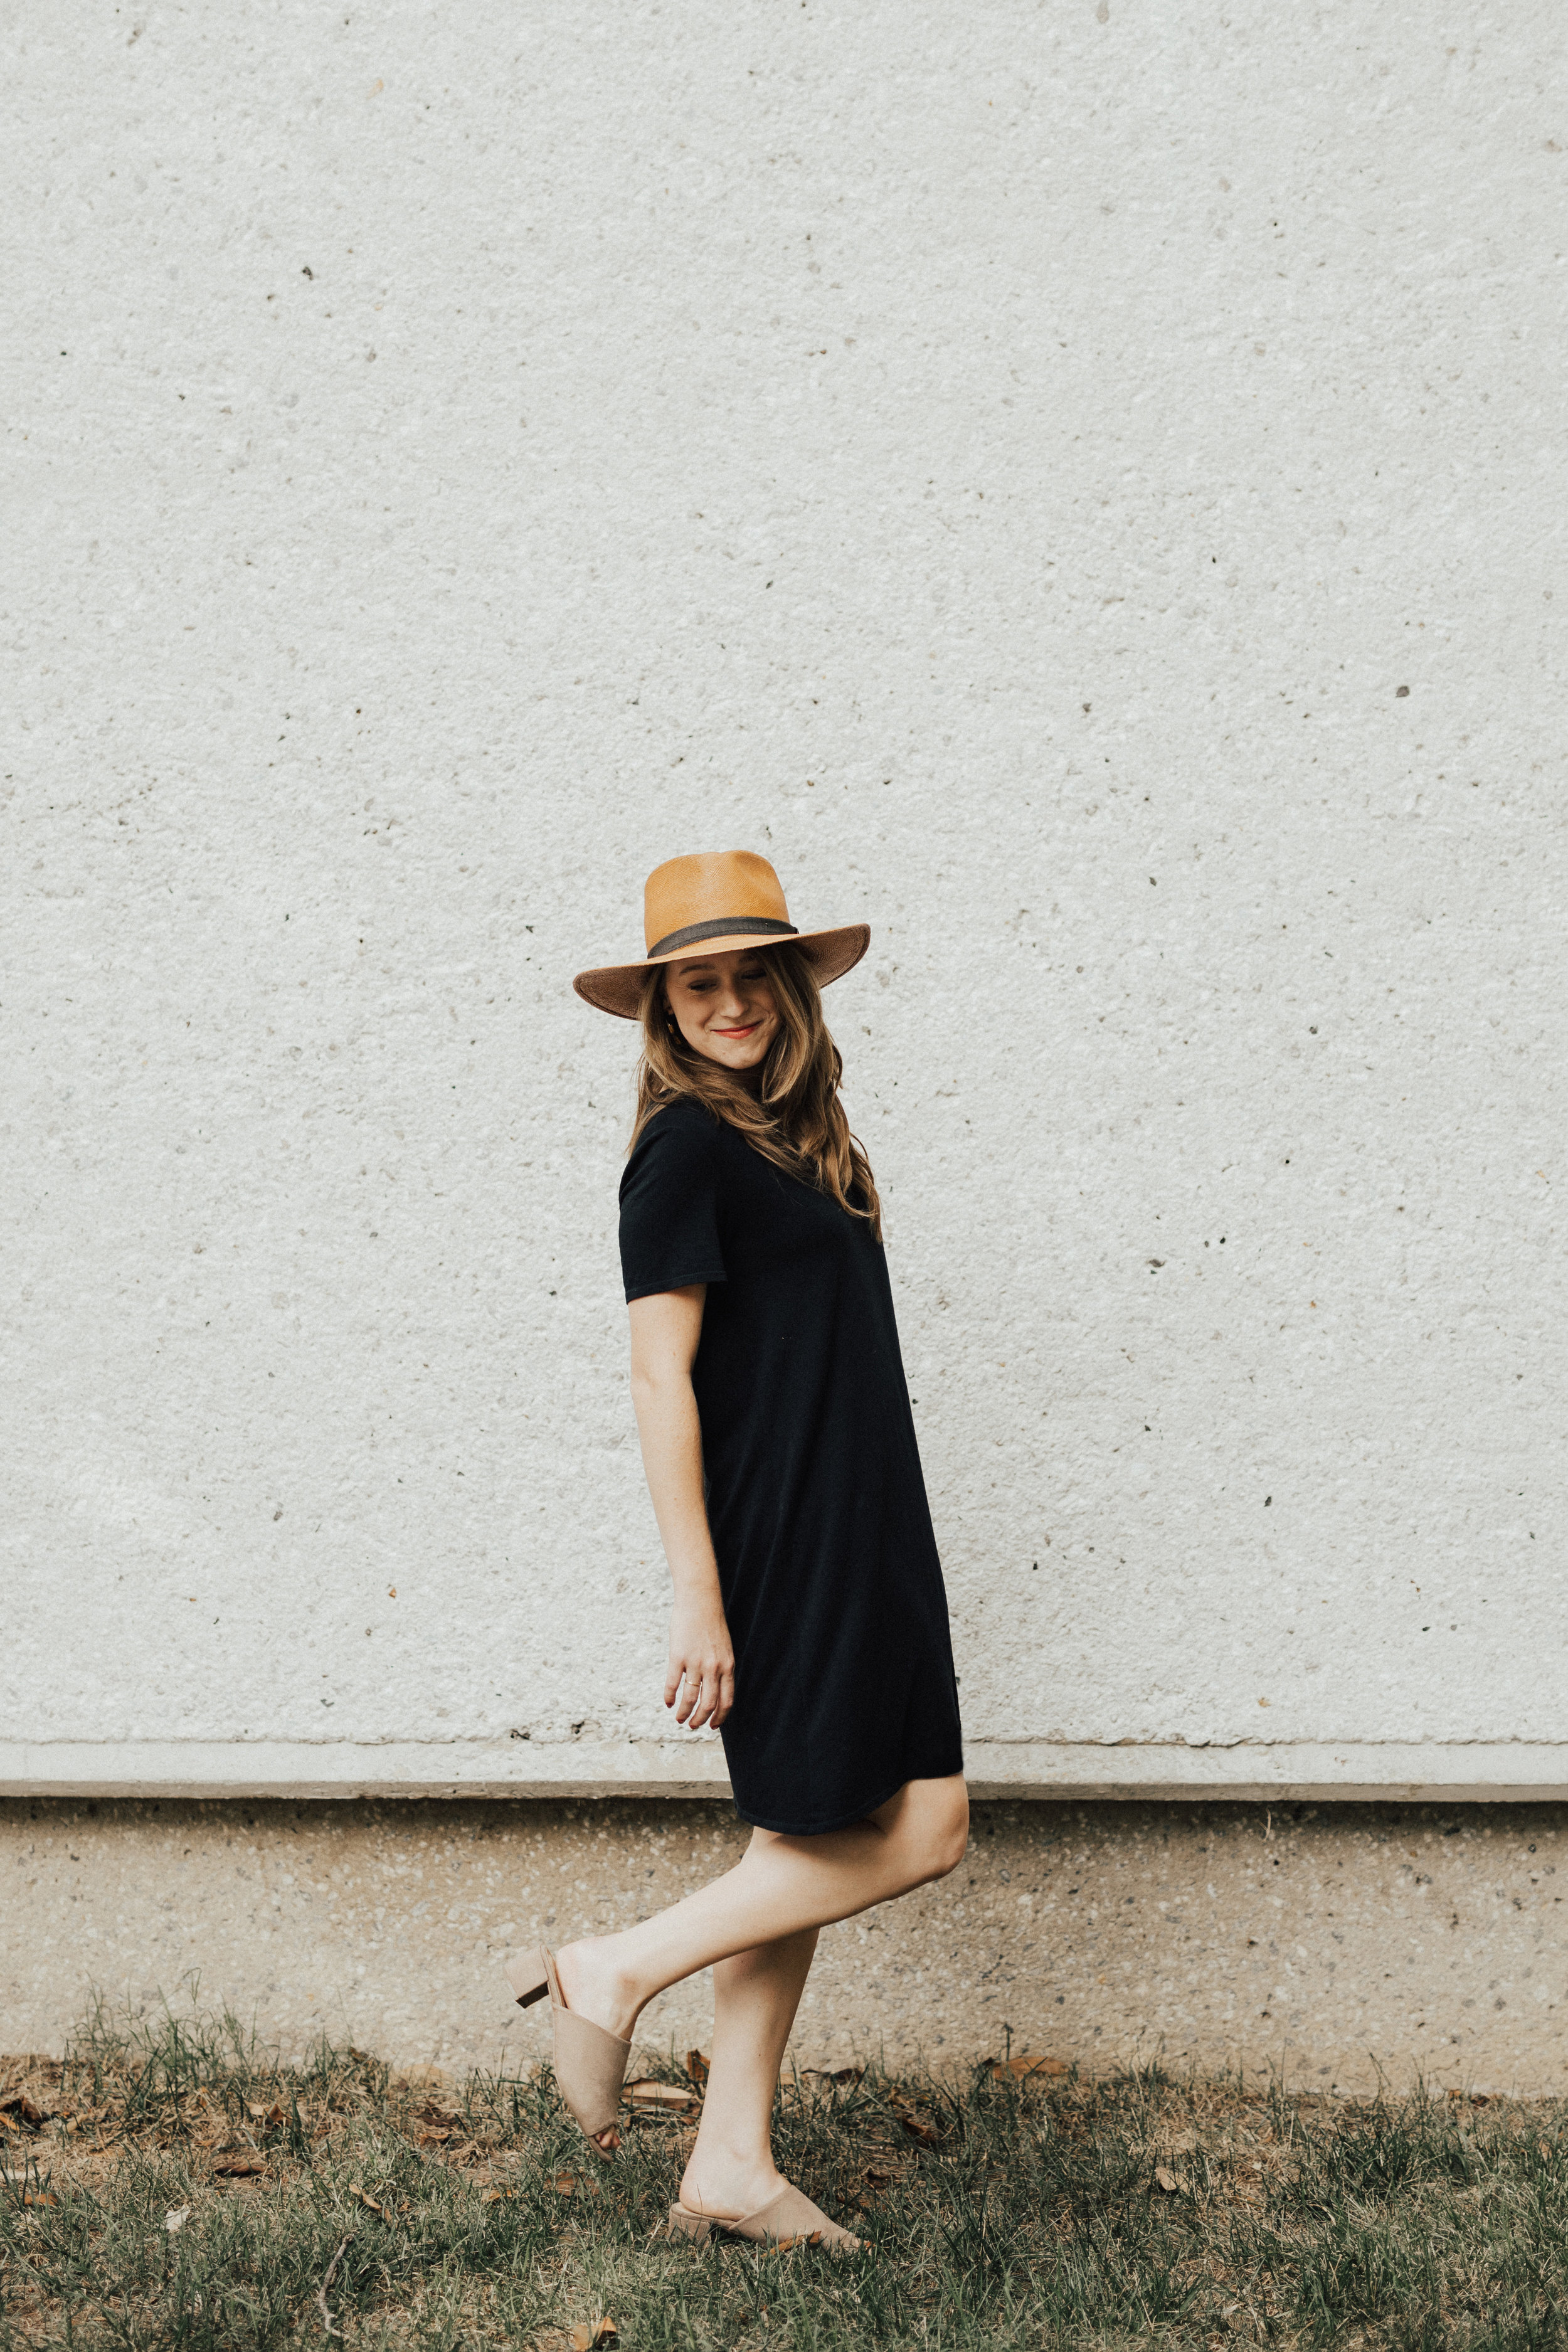 A few of my favorite pieces together - the Equal Uprise Woven Hat + Thread Co. Custom Shirt Dress.